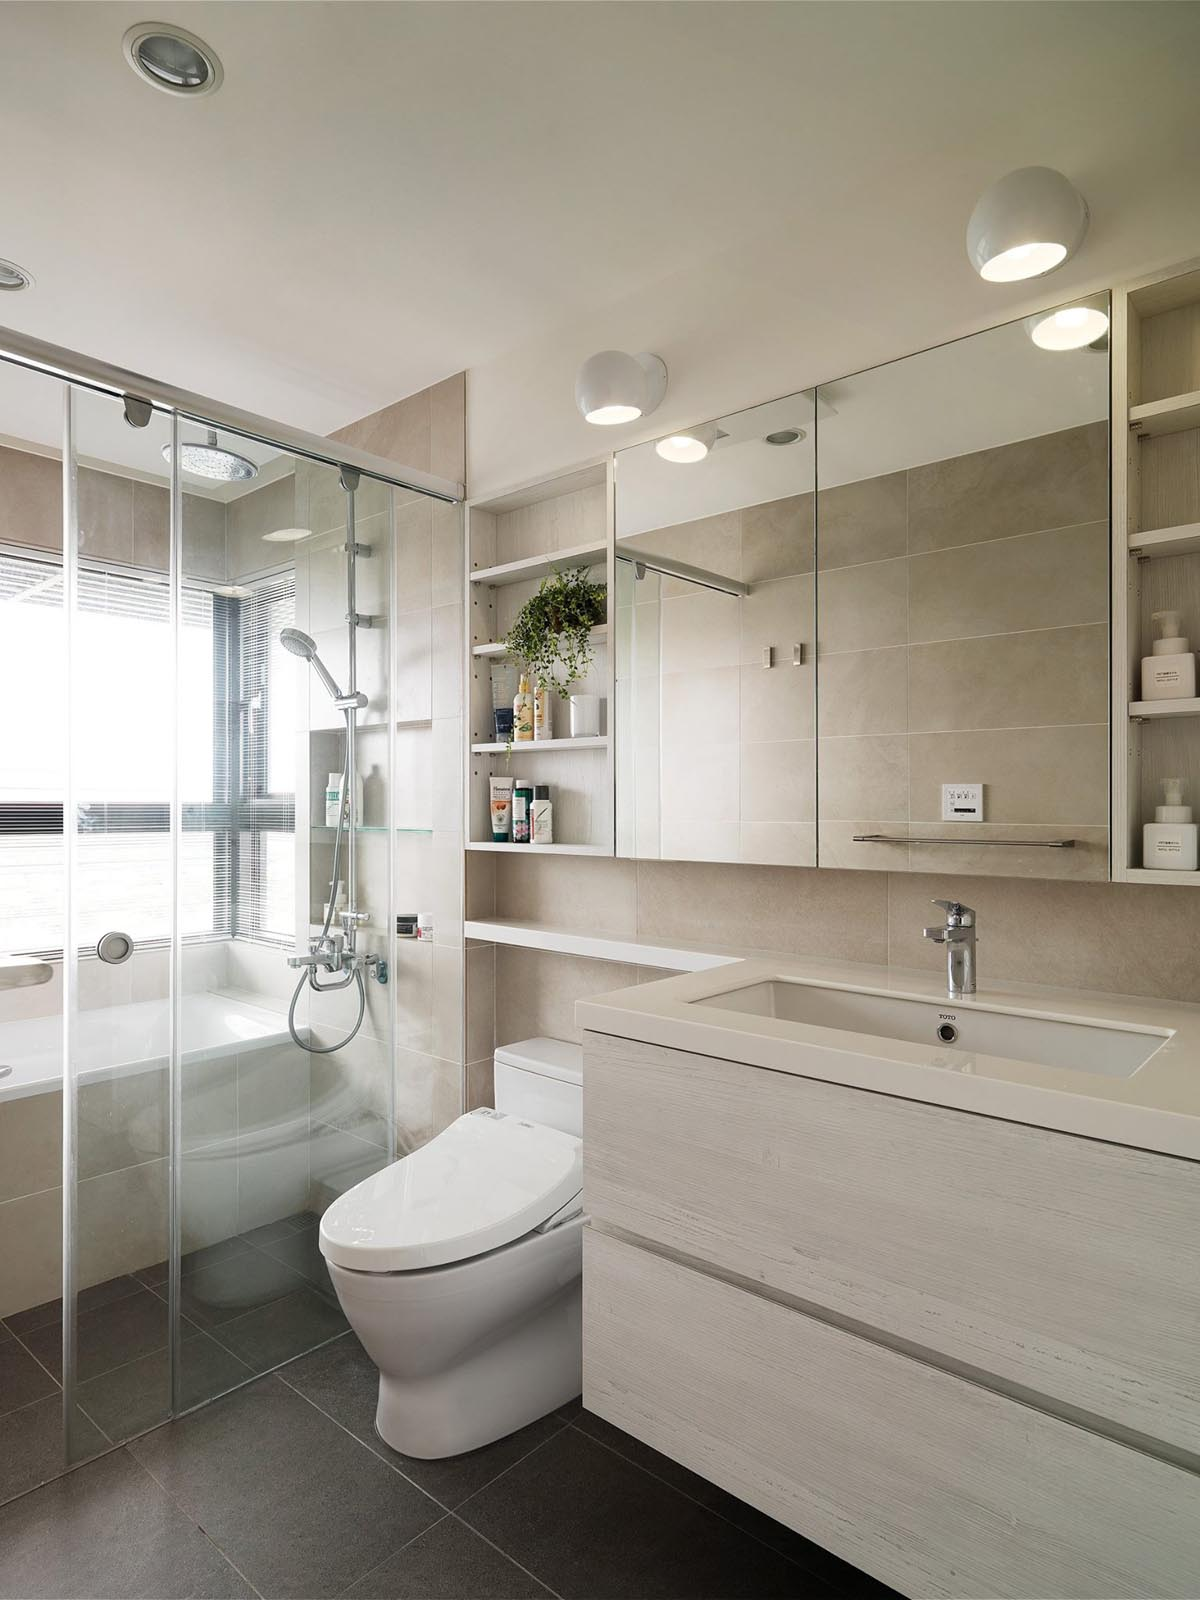 Completely White Apartment With Dominant Central Home Office images 24